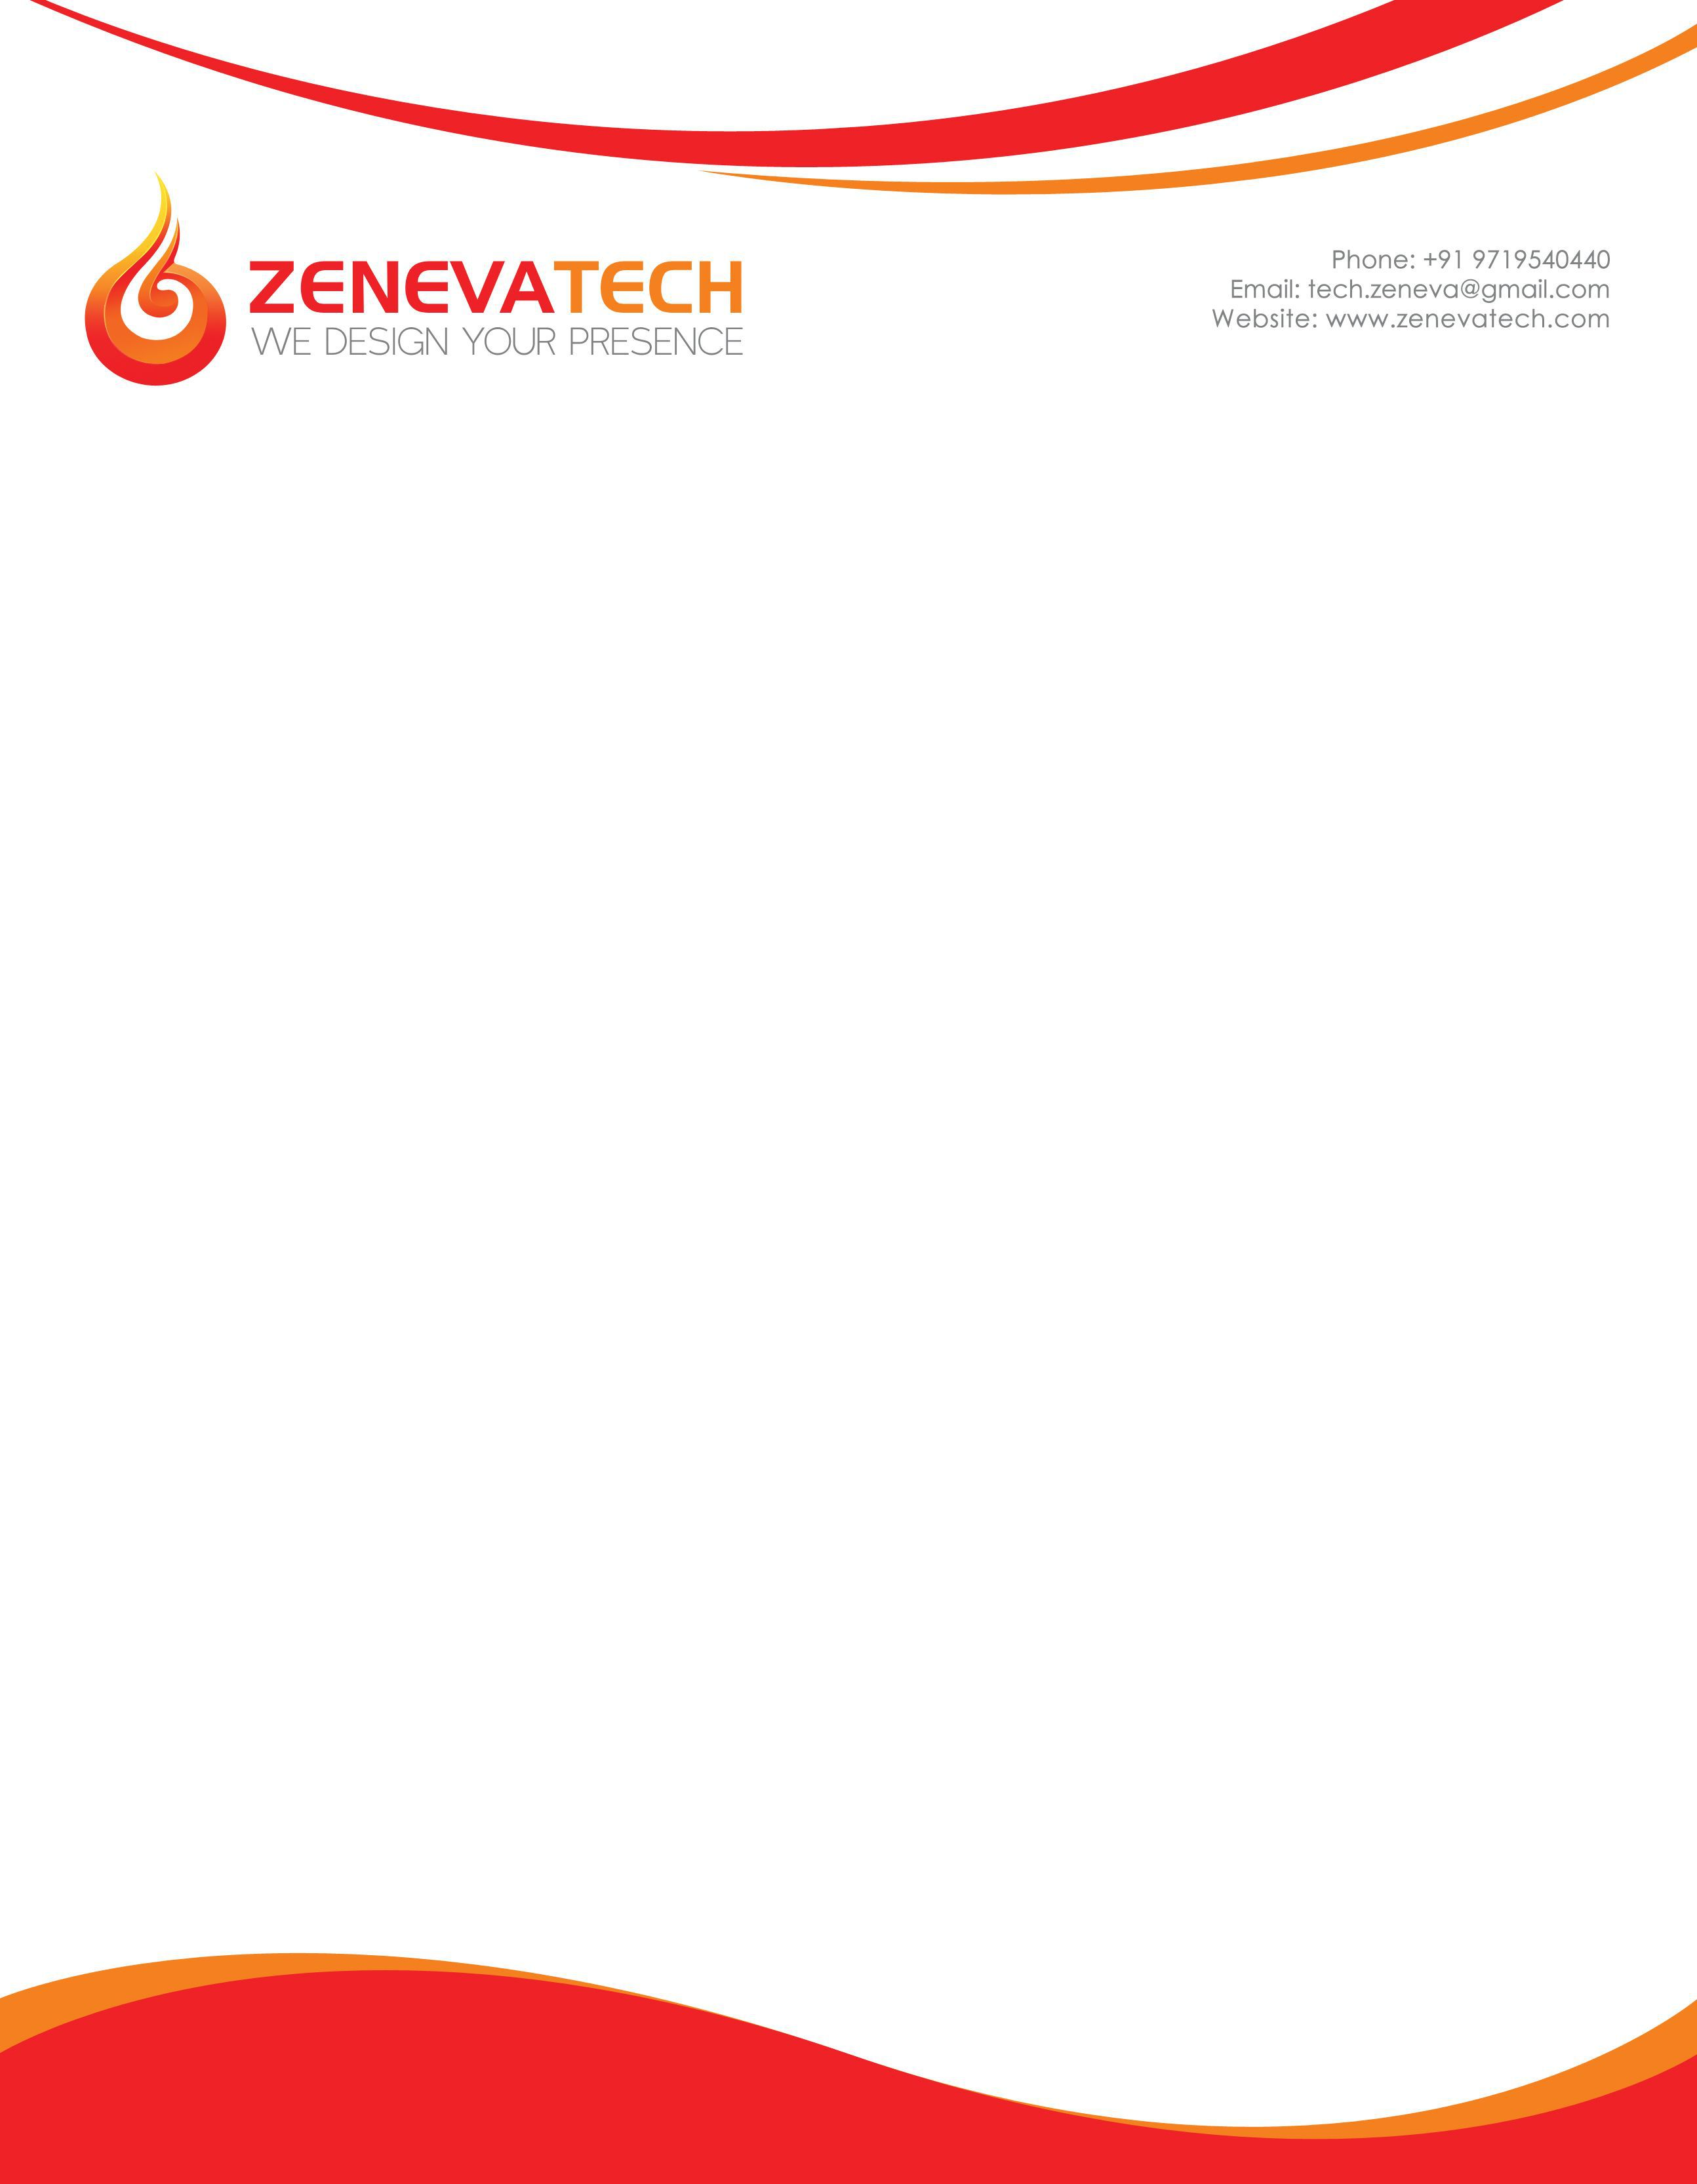 002 Fascinating Letter Pad Design Template Concept  Letterhead Download Ai Free In WordFull